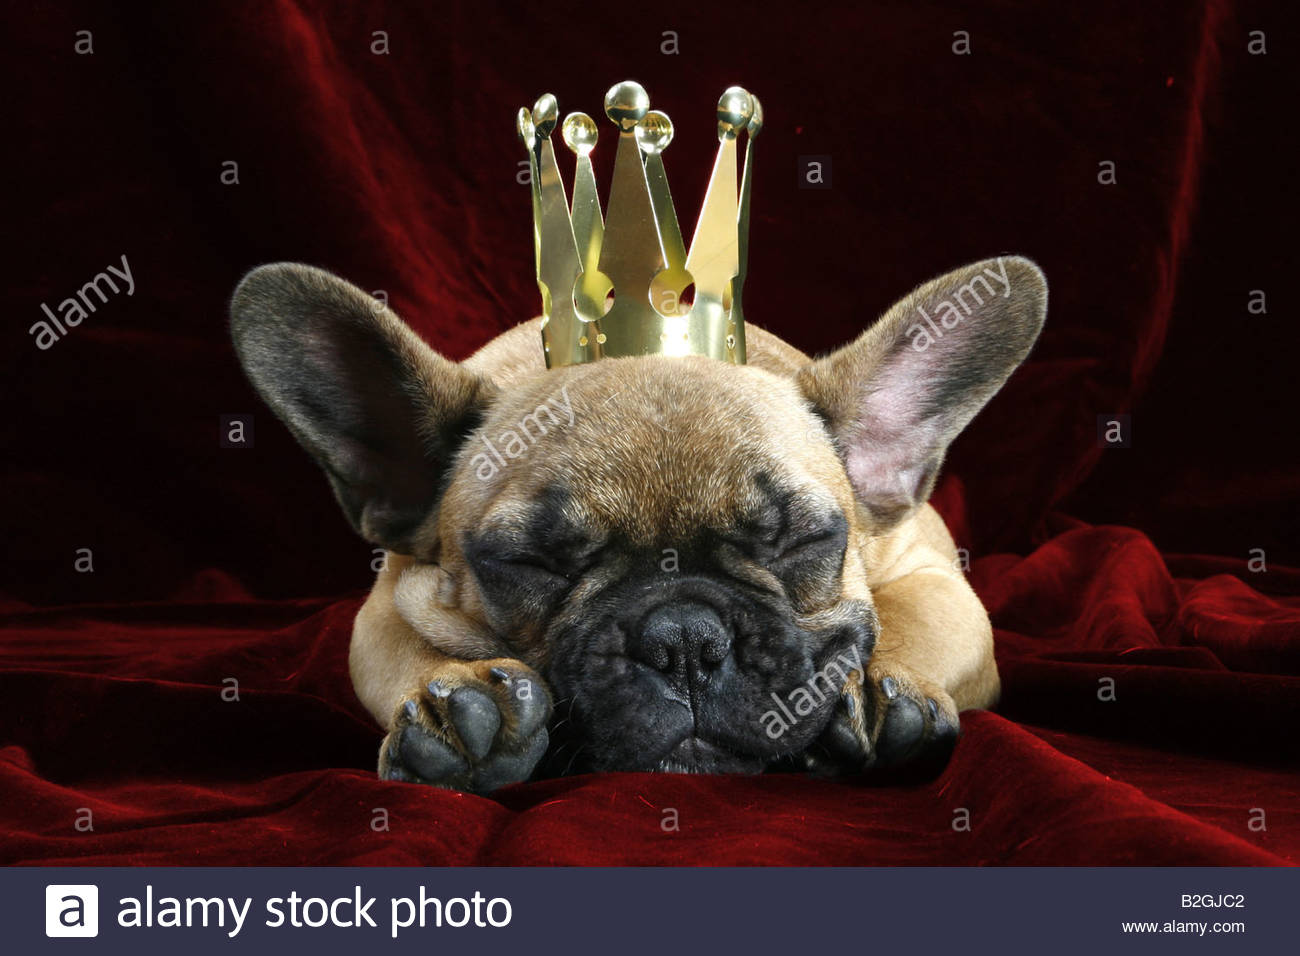 king crone droll french bulldog frenchie bully bouledogue francais stock phot. Black Bedroom Furniture Sets. Home Design Ideas